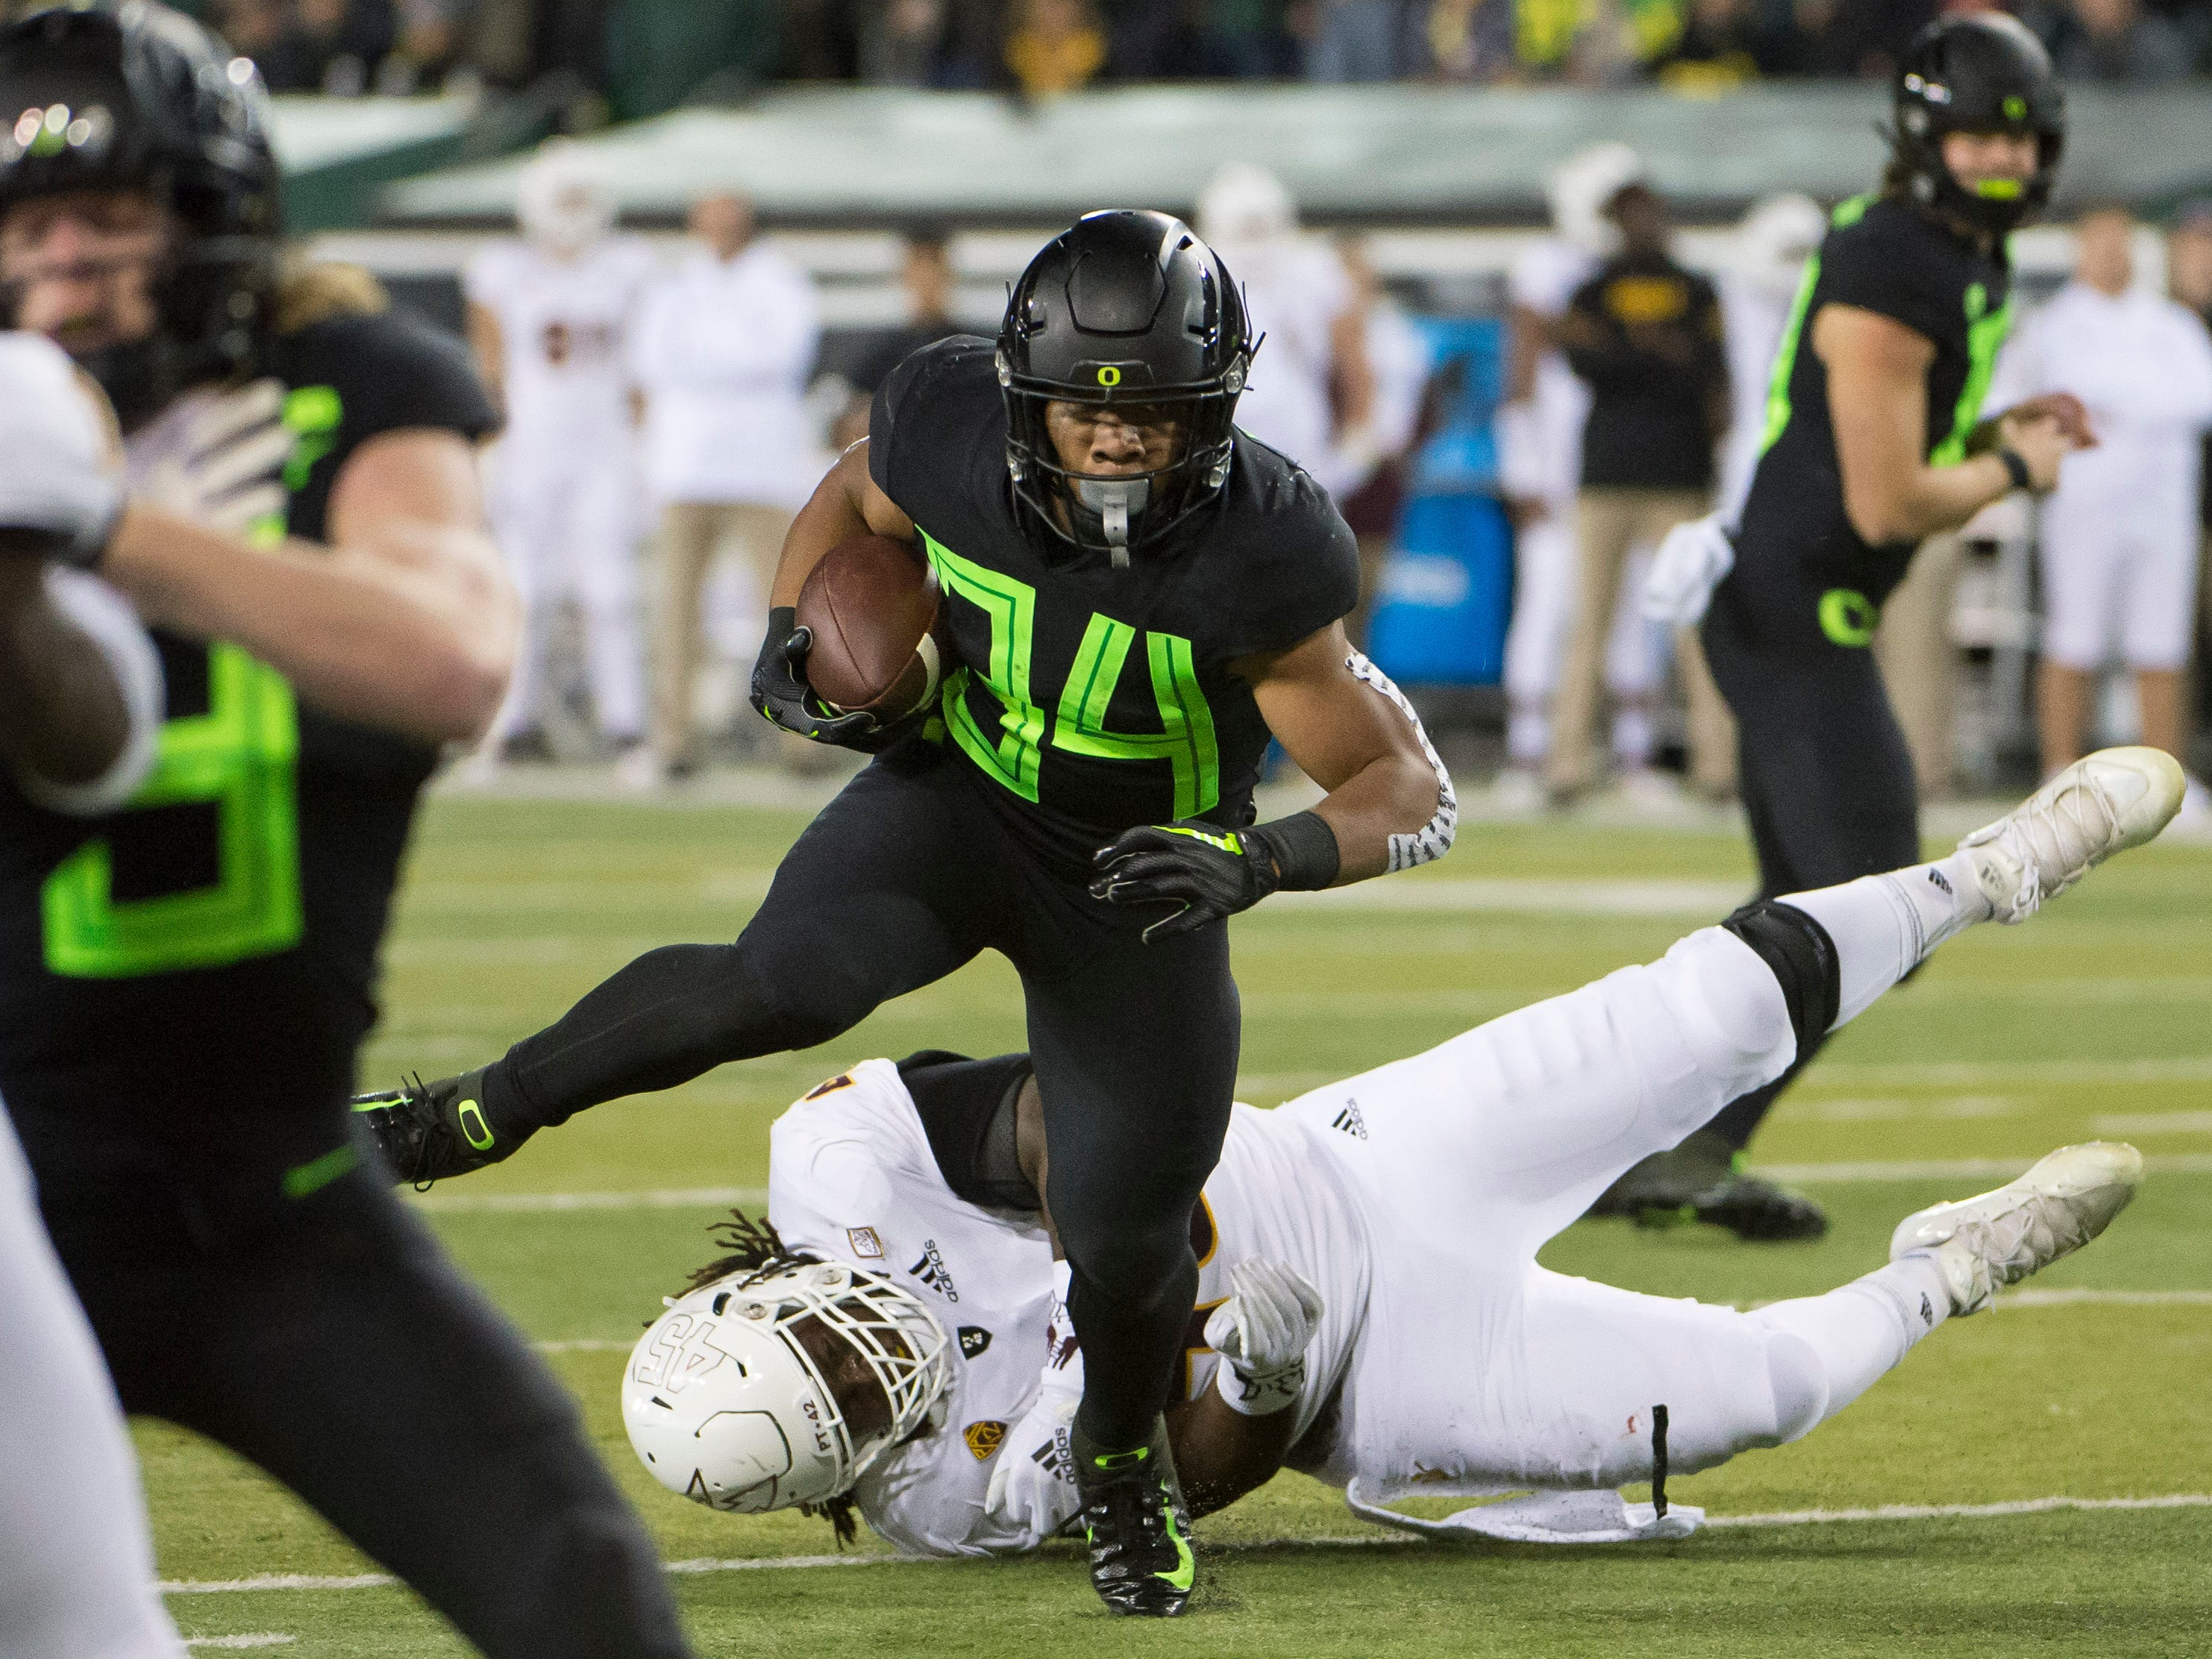 Nov 17, 2018; Eugene, OR, USA; Oregon Ducks running back CJ Verdell (34) breaks away from Arizona State Sun Devils defensive lineman George Lea (45) for a touchdown during the first half at Autzen Stadium. Mandatory Credit: Troy Wayrynen-USA TODAY Sports